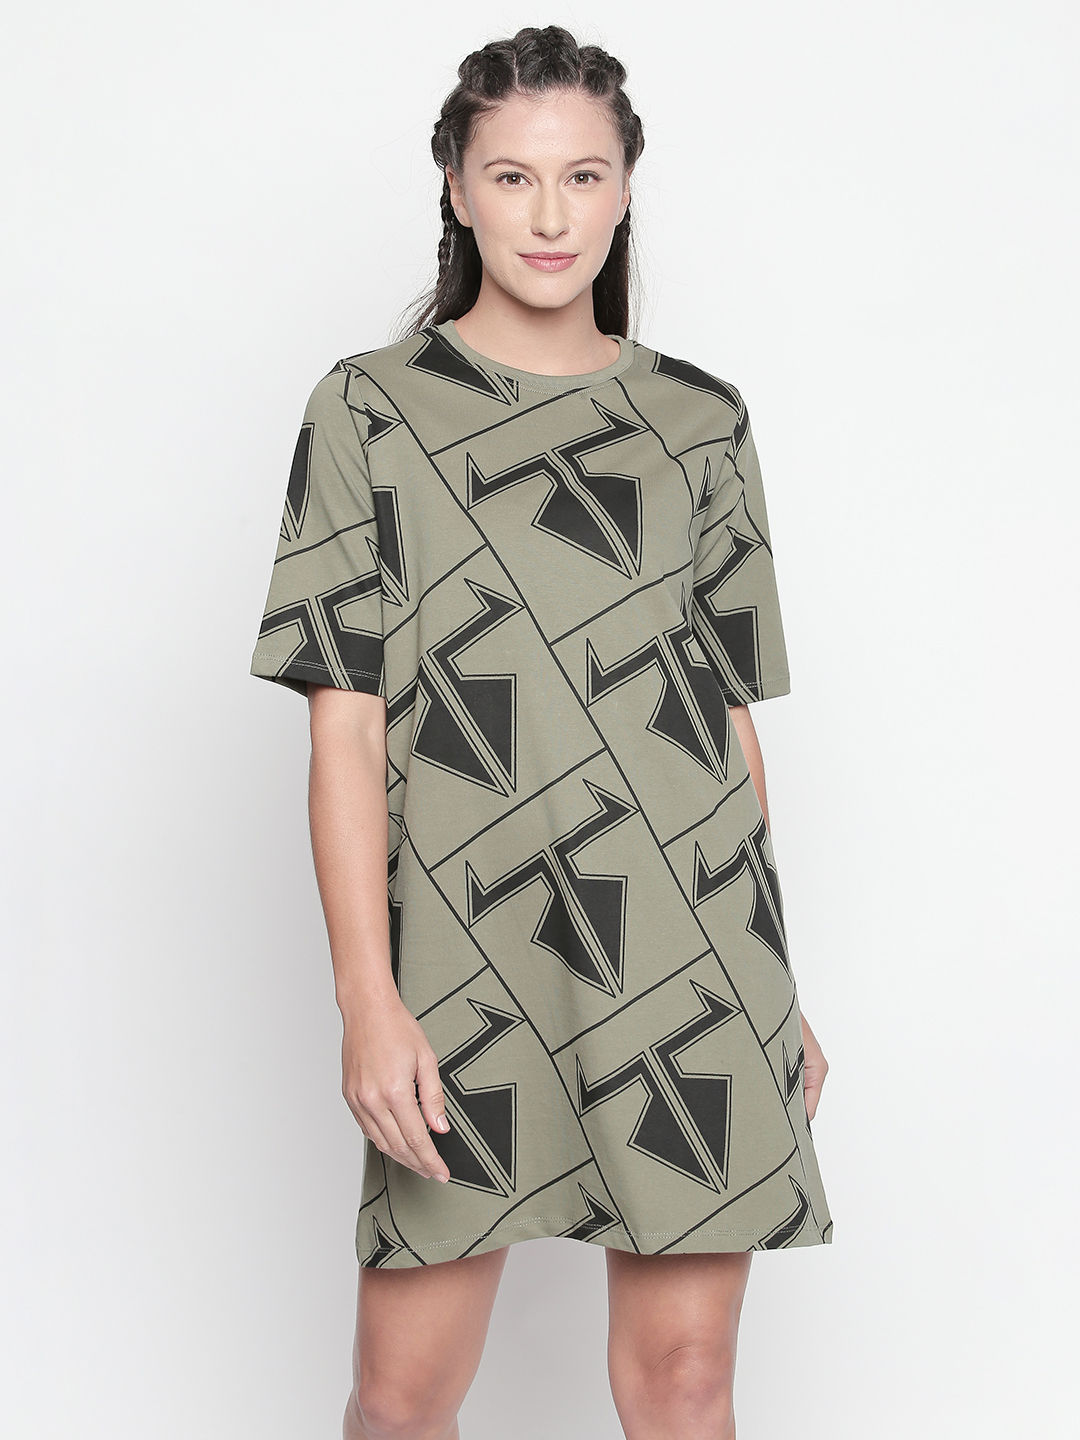 DISRUPT Graphic Print OLIVE DRESS FOR WOMEN'S